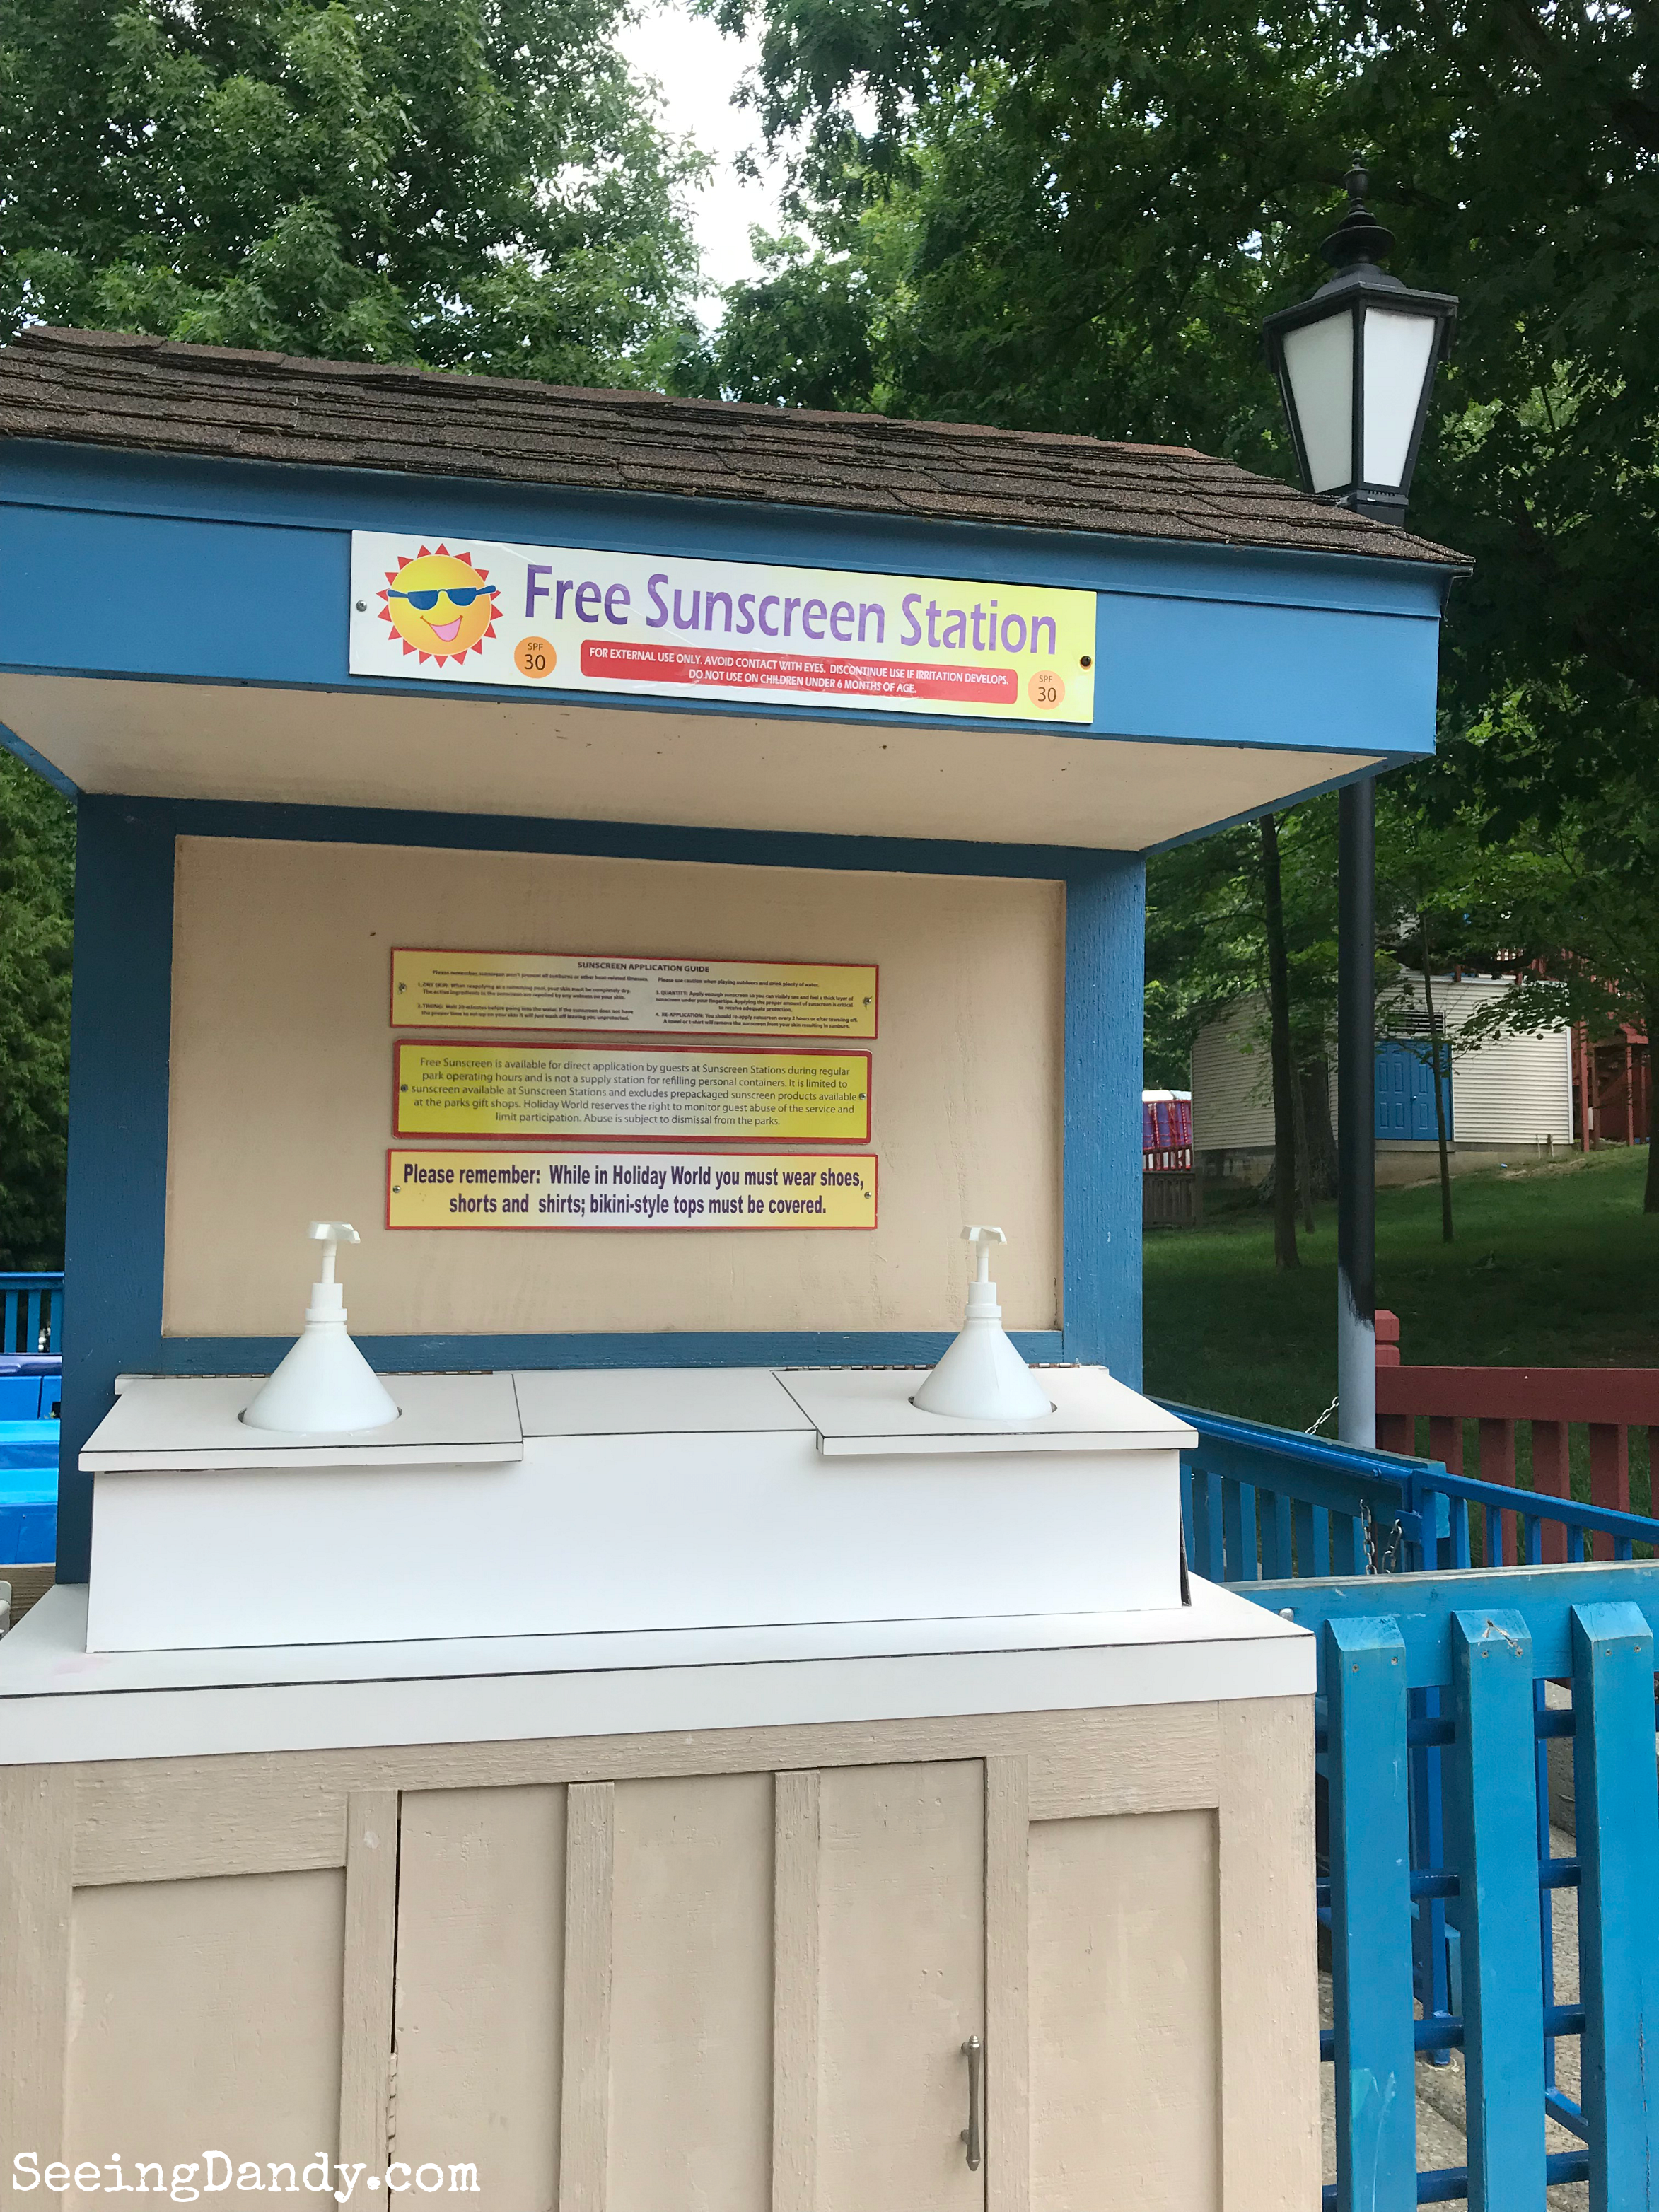 Free sunscreen station.